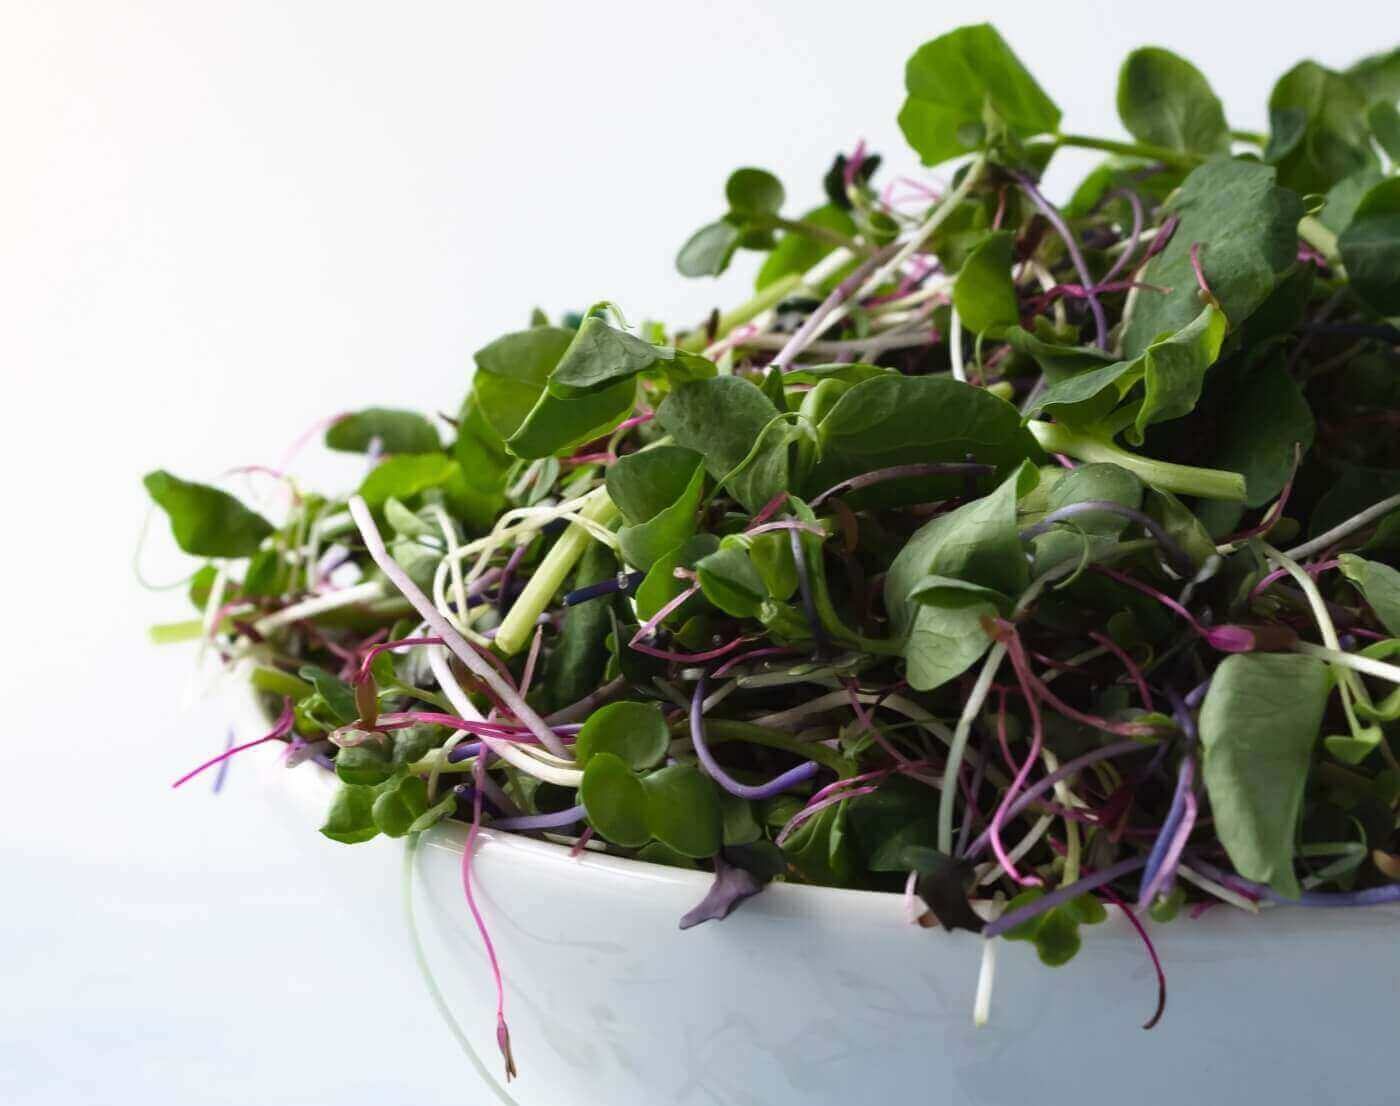 microgreen nutrition and health benefit